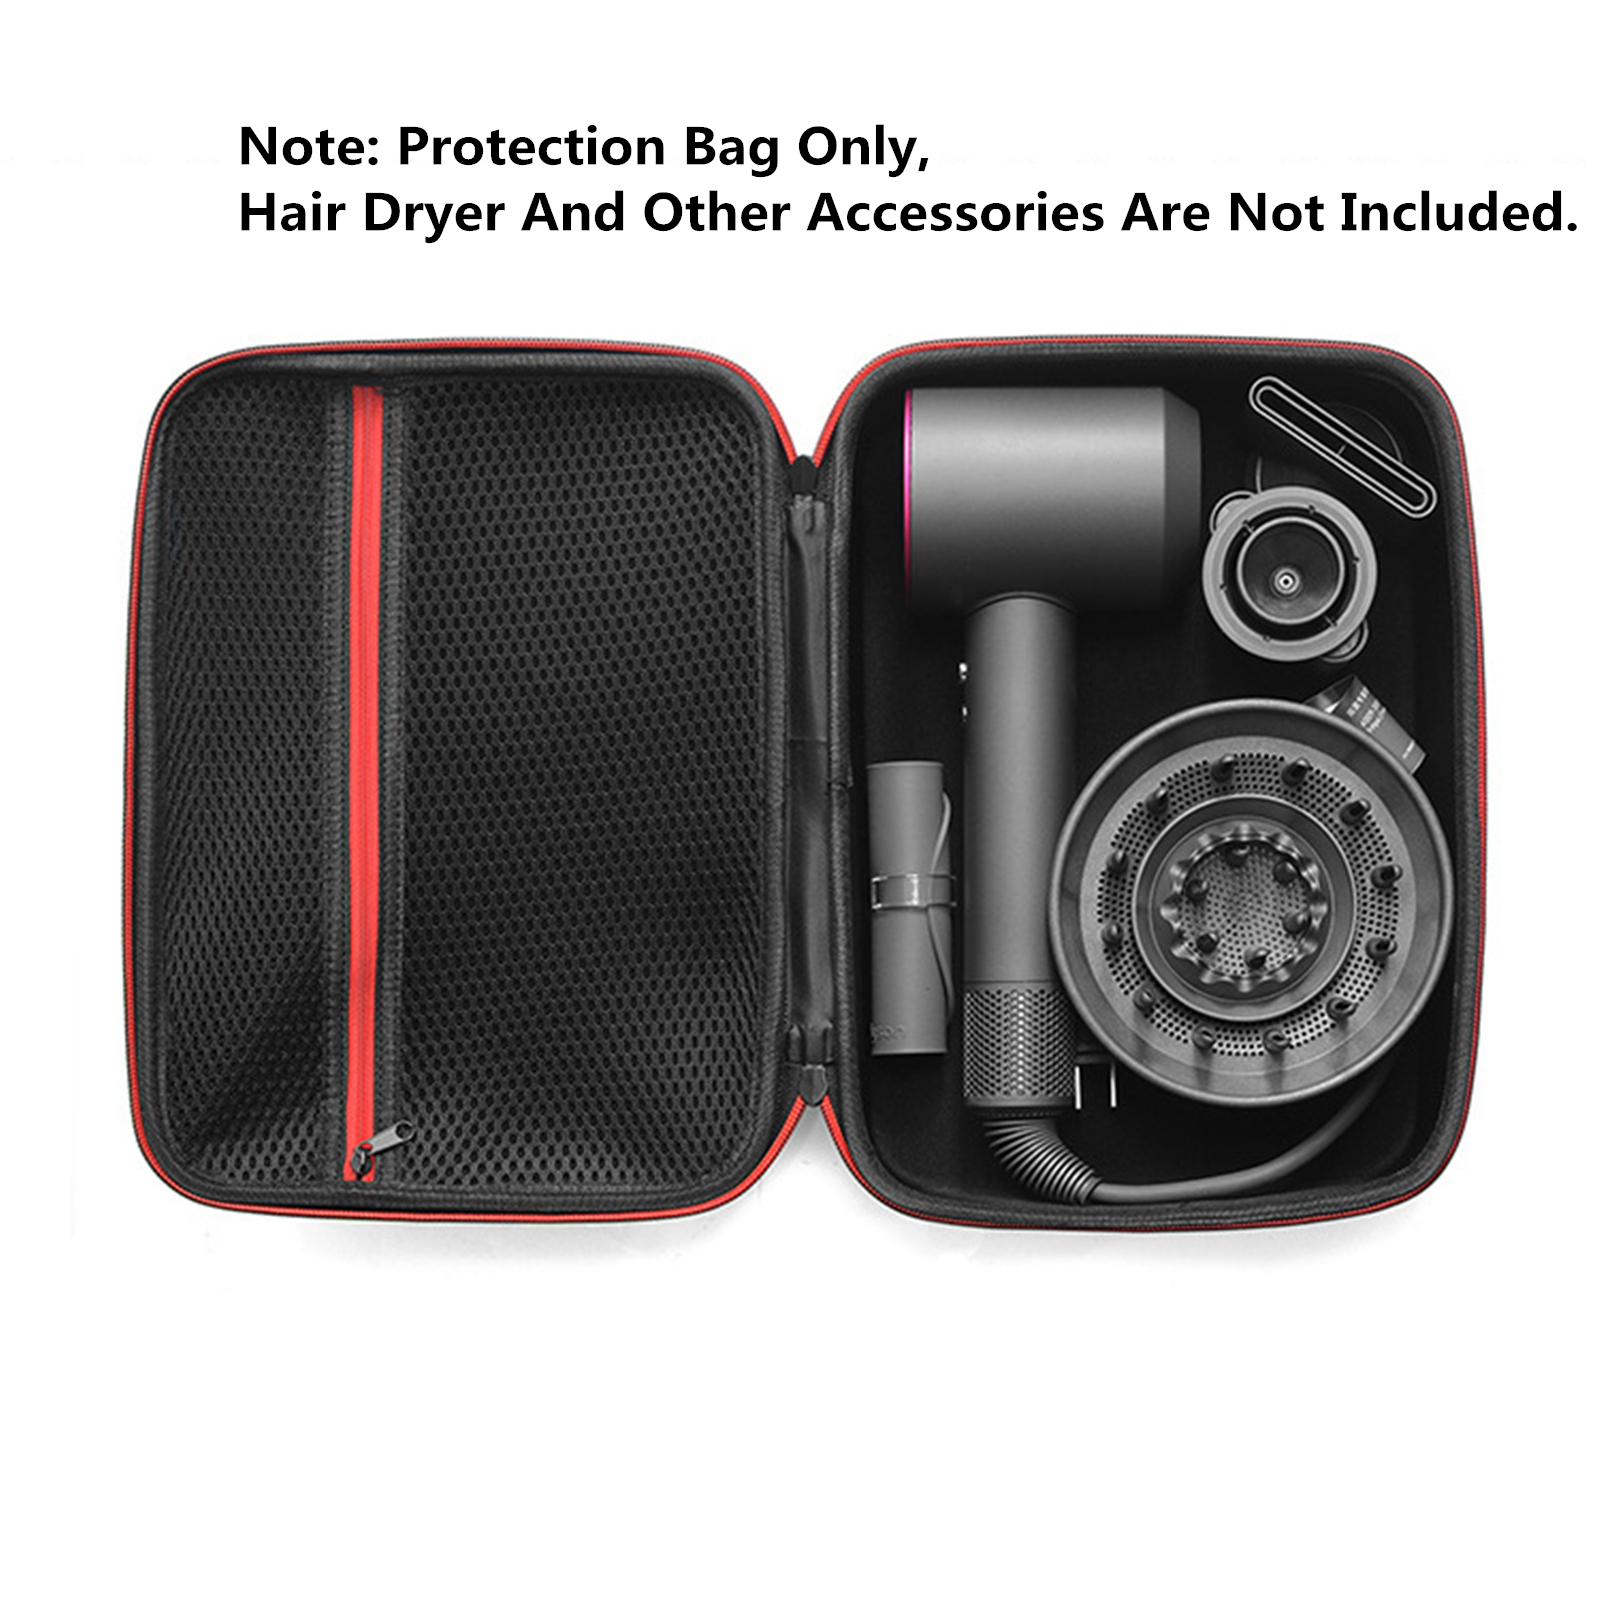 Portable Travel Carry Case Storage Case for Dyson Supersonic HD03 Hair Dryer Protection Bag|Personal Care Appliance Parts| |  - title=